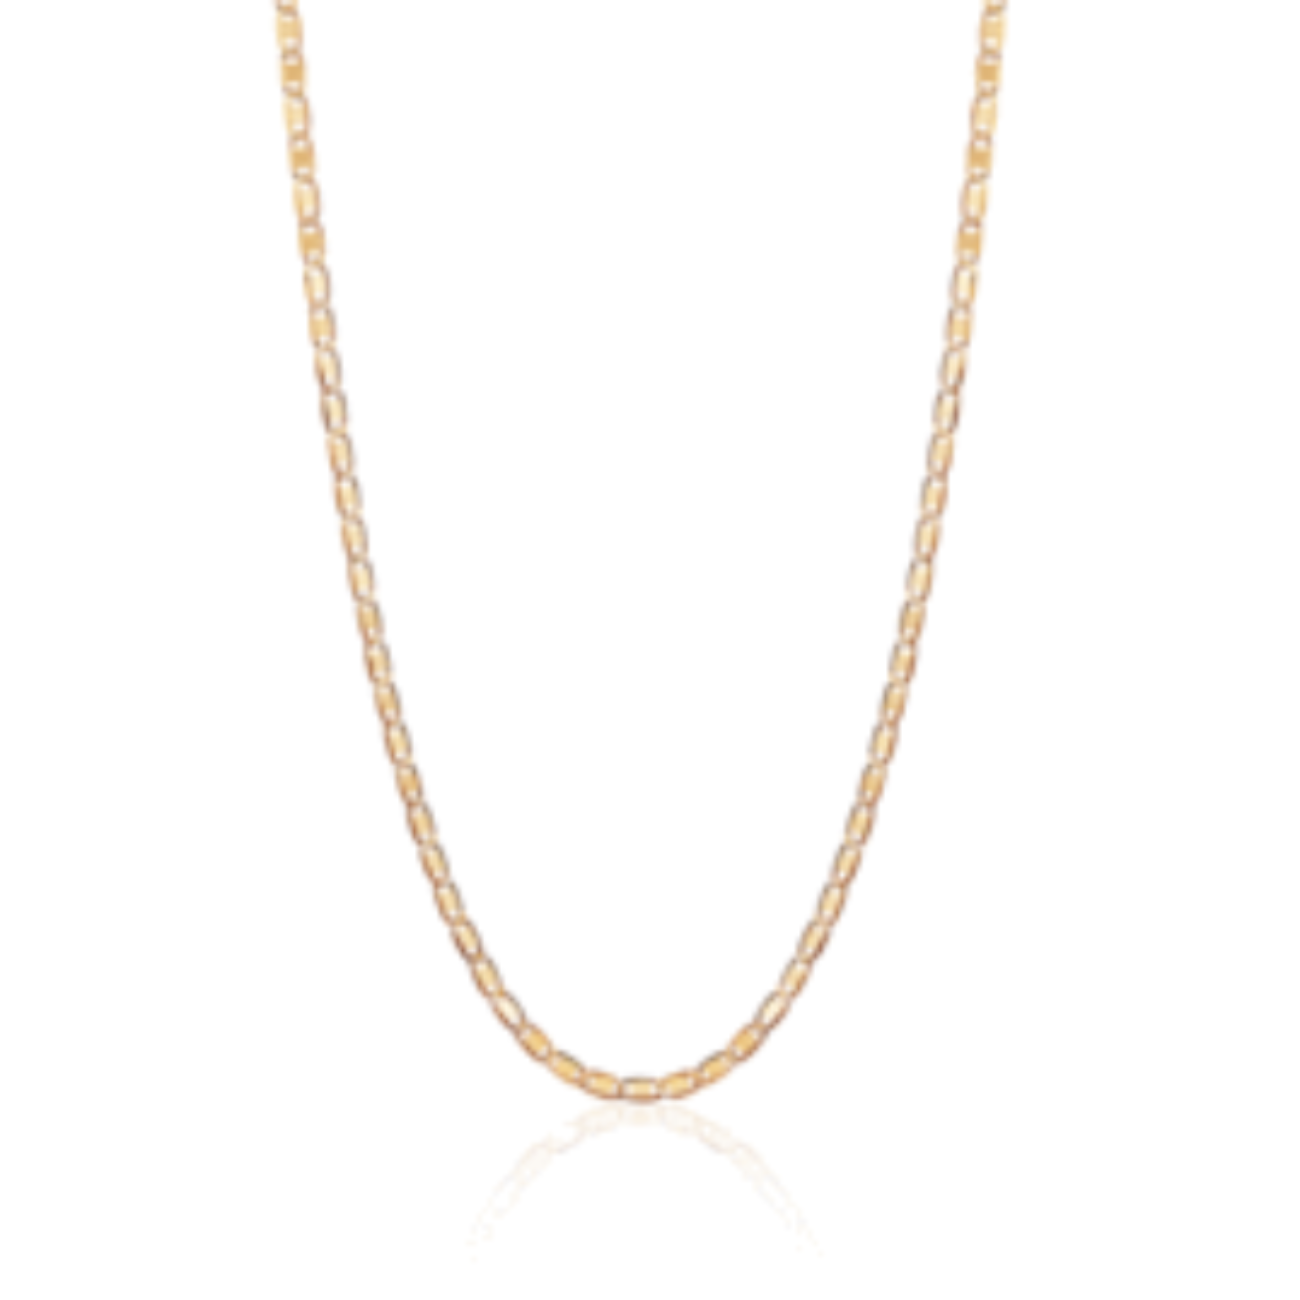 JENNY BIRD - BOBBI NECKLACE IN GOLD